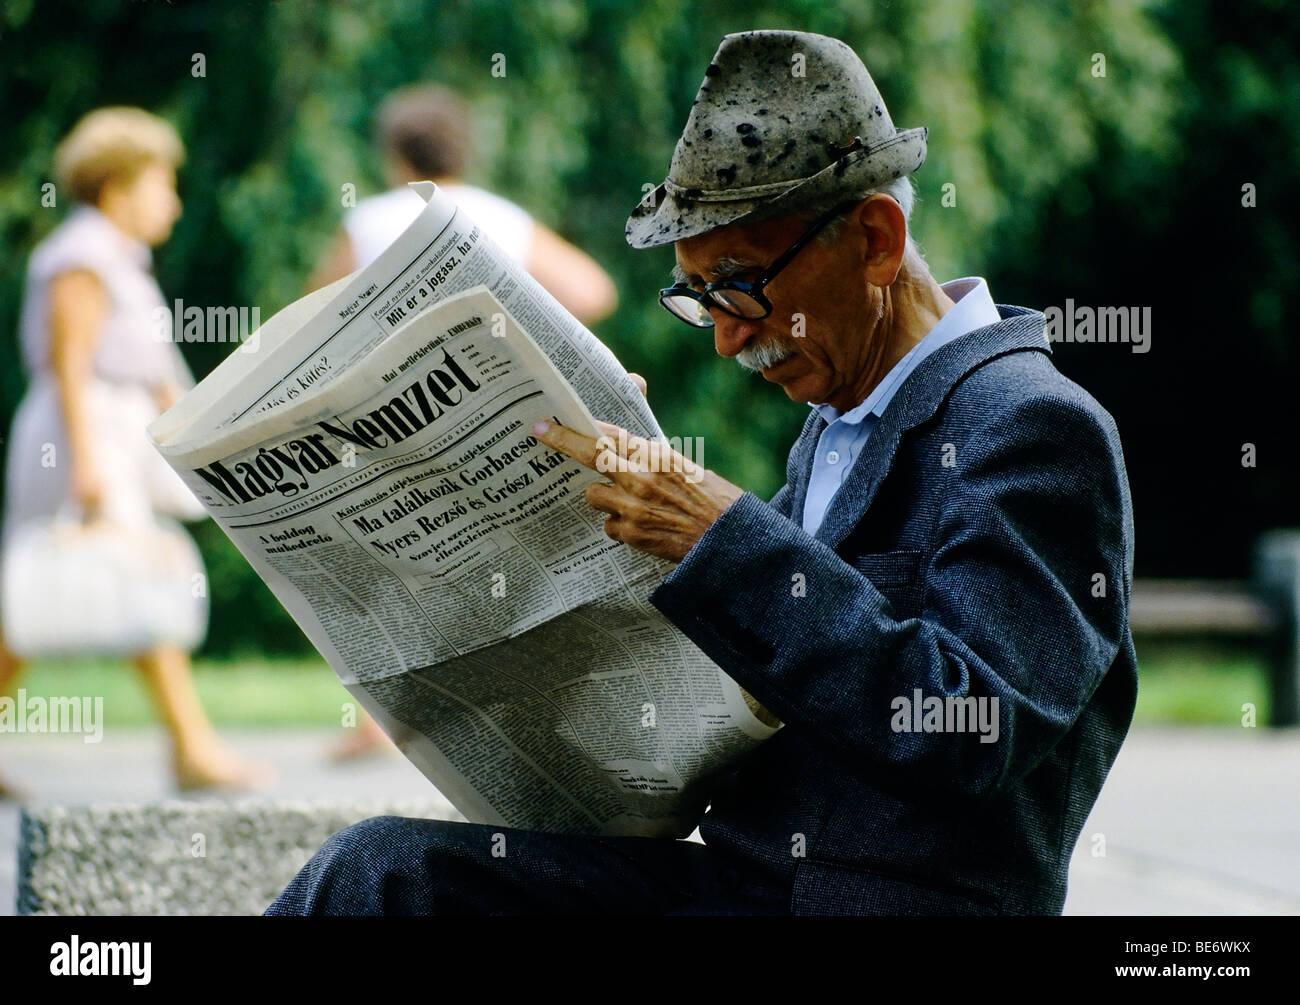 Old man reading conservative Hungarian newspaper in a park, Magyar Nemzet, Budapest, Hungary, Europe Stock Photo